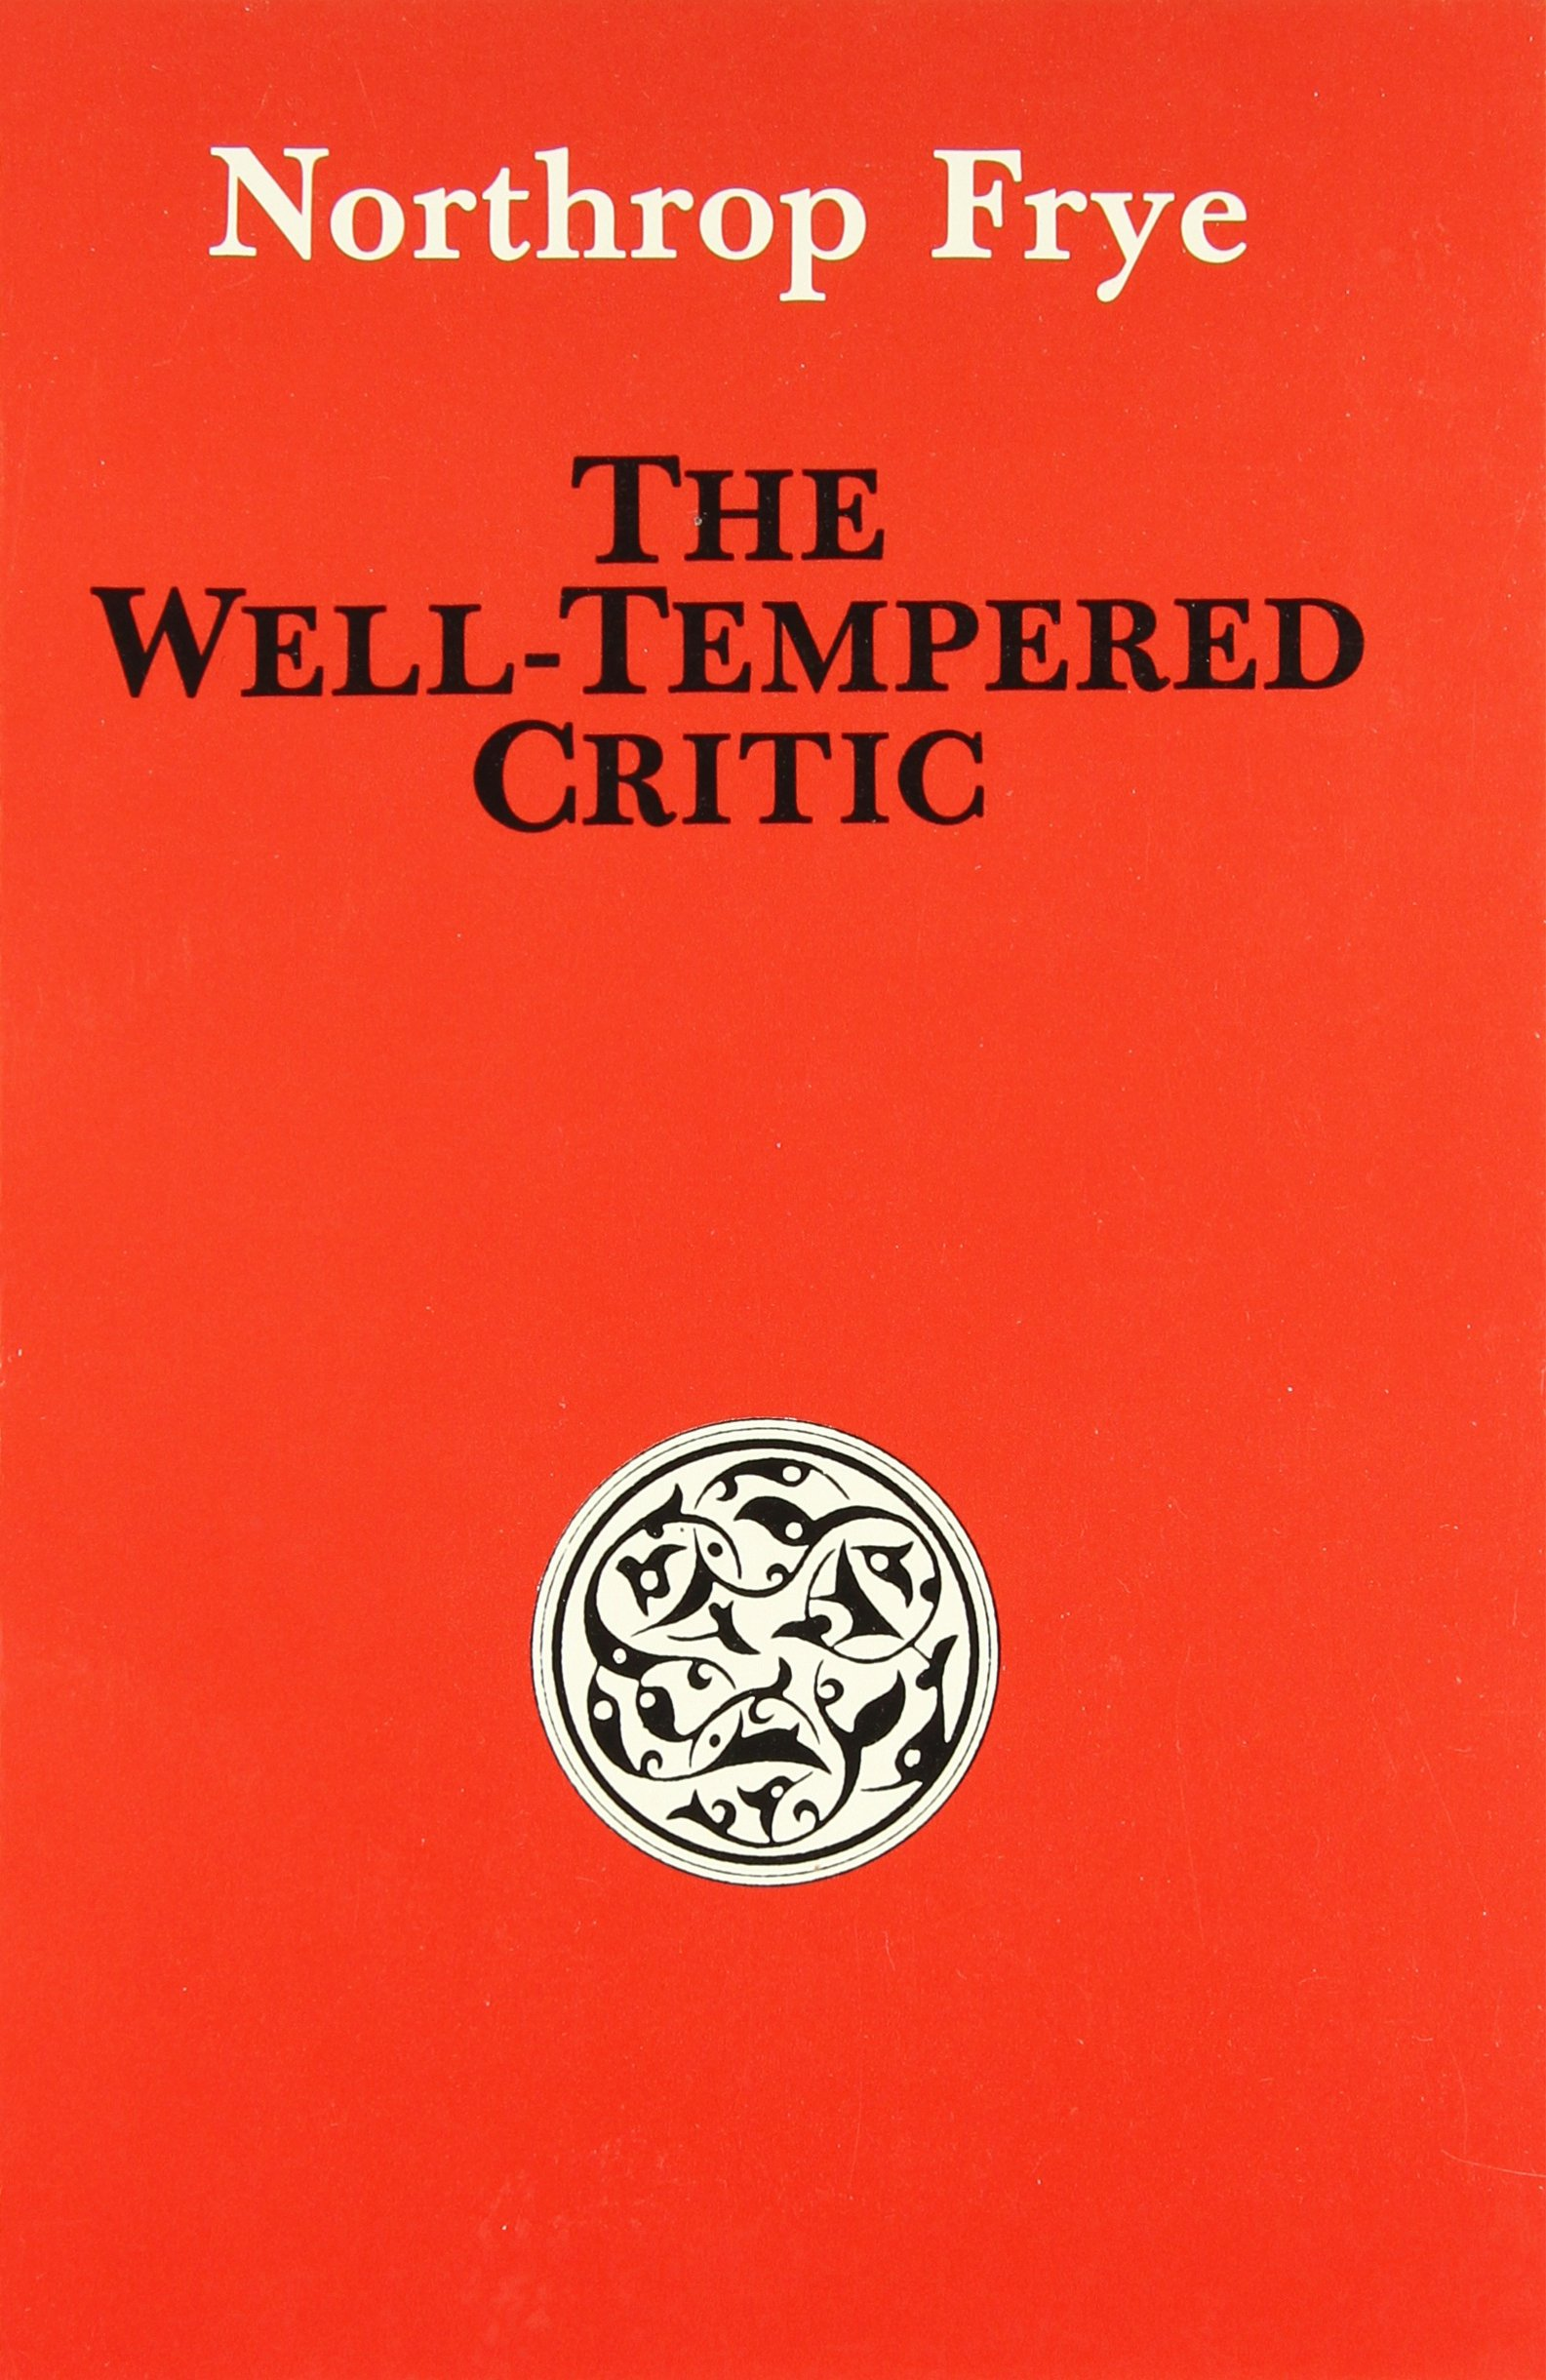 The Well-Tempered Critic: Northrop Frye: 9780889027466: Books ...